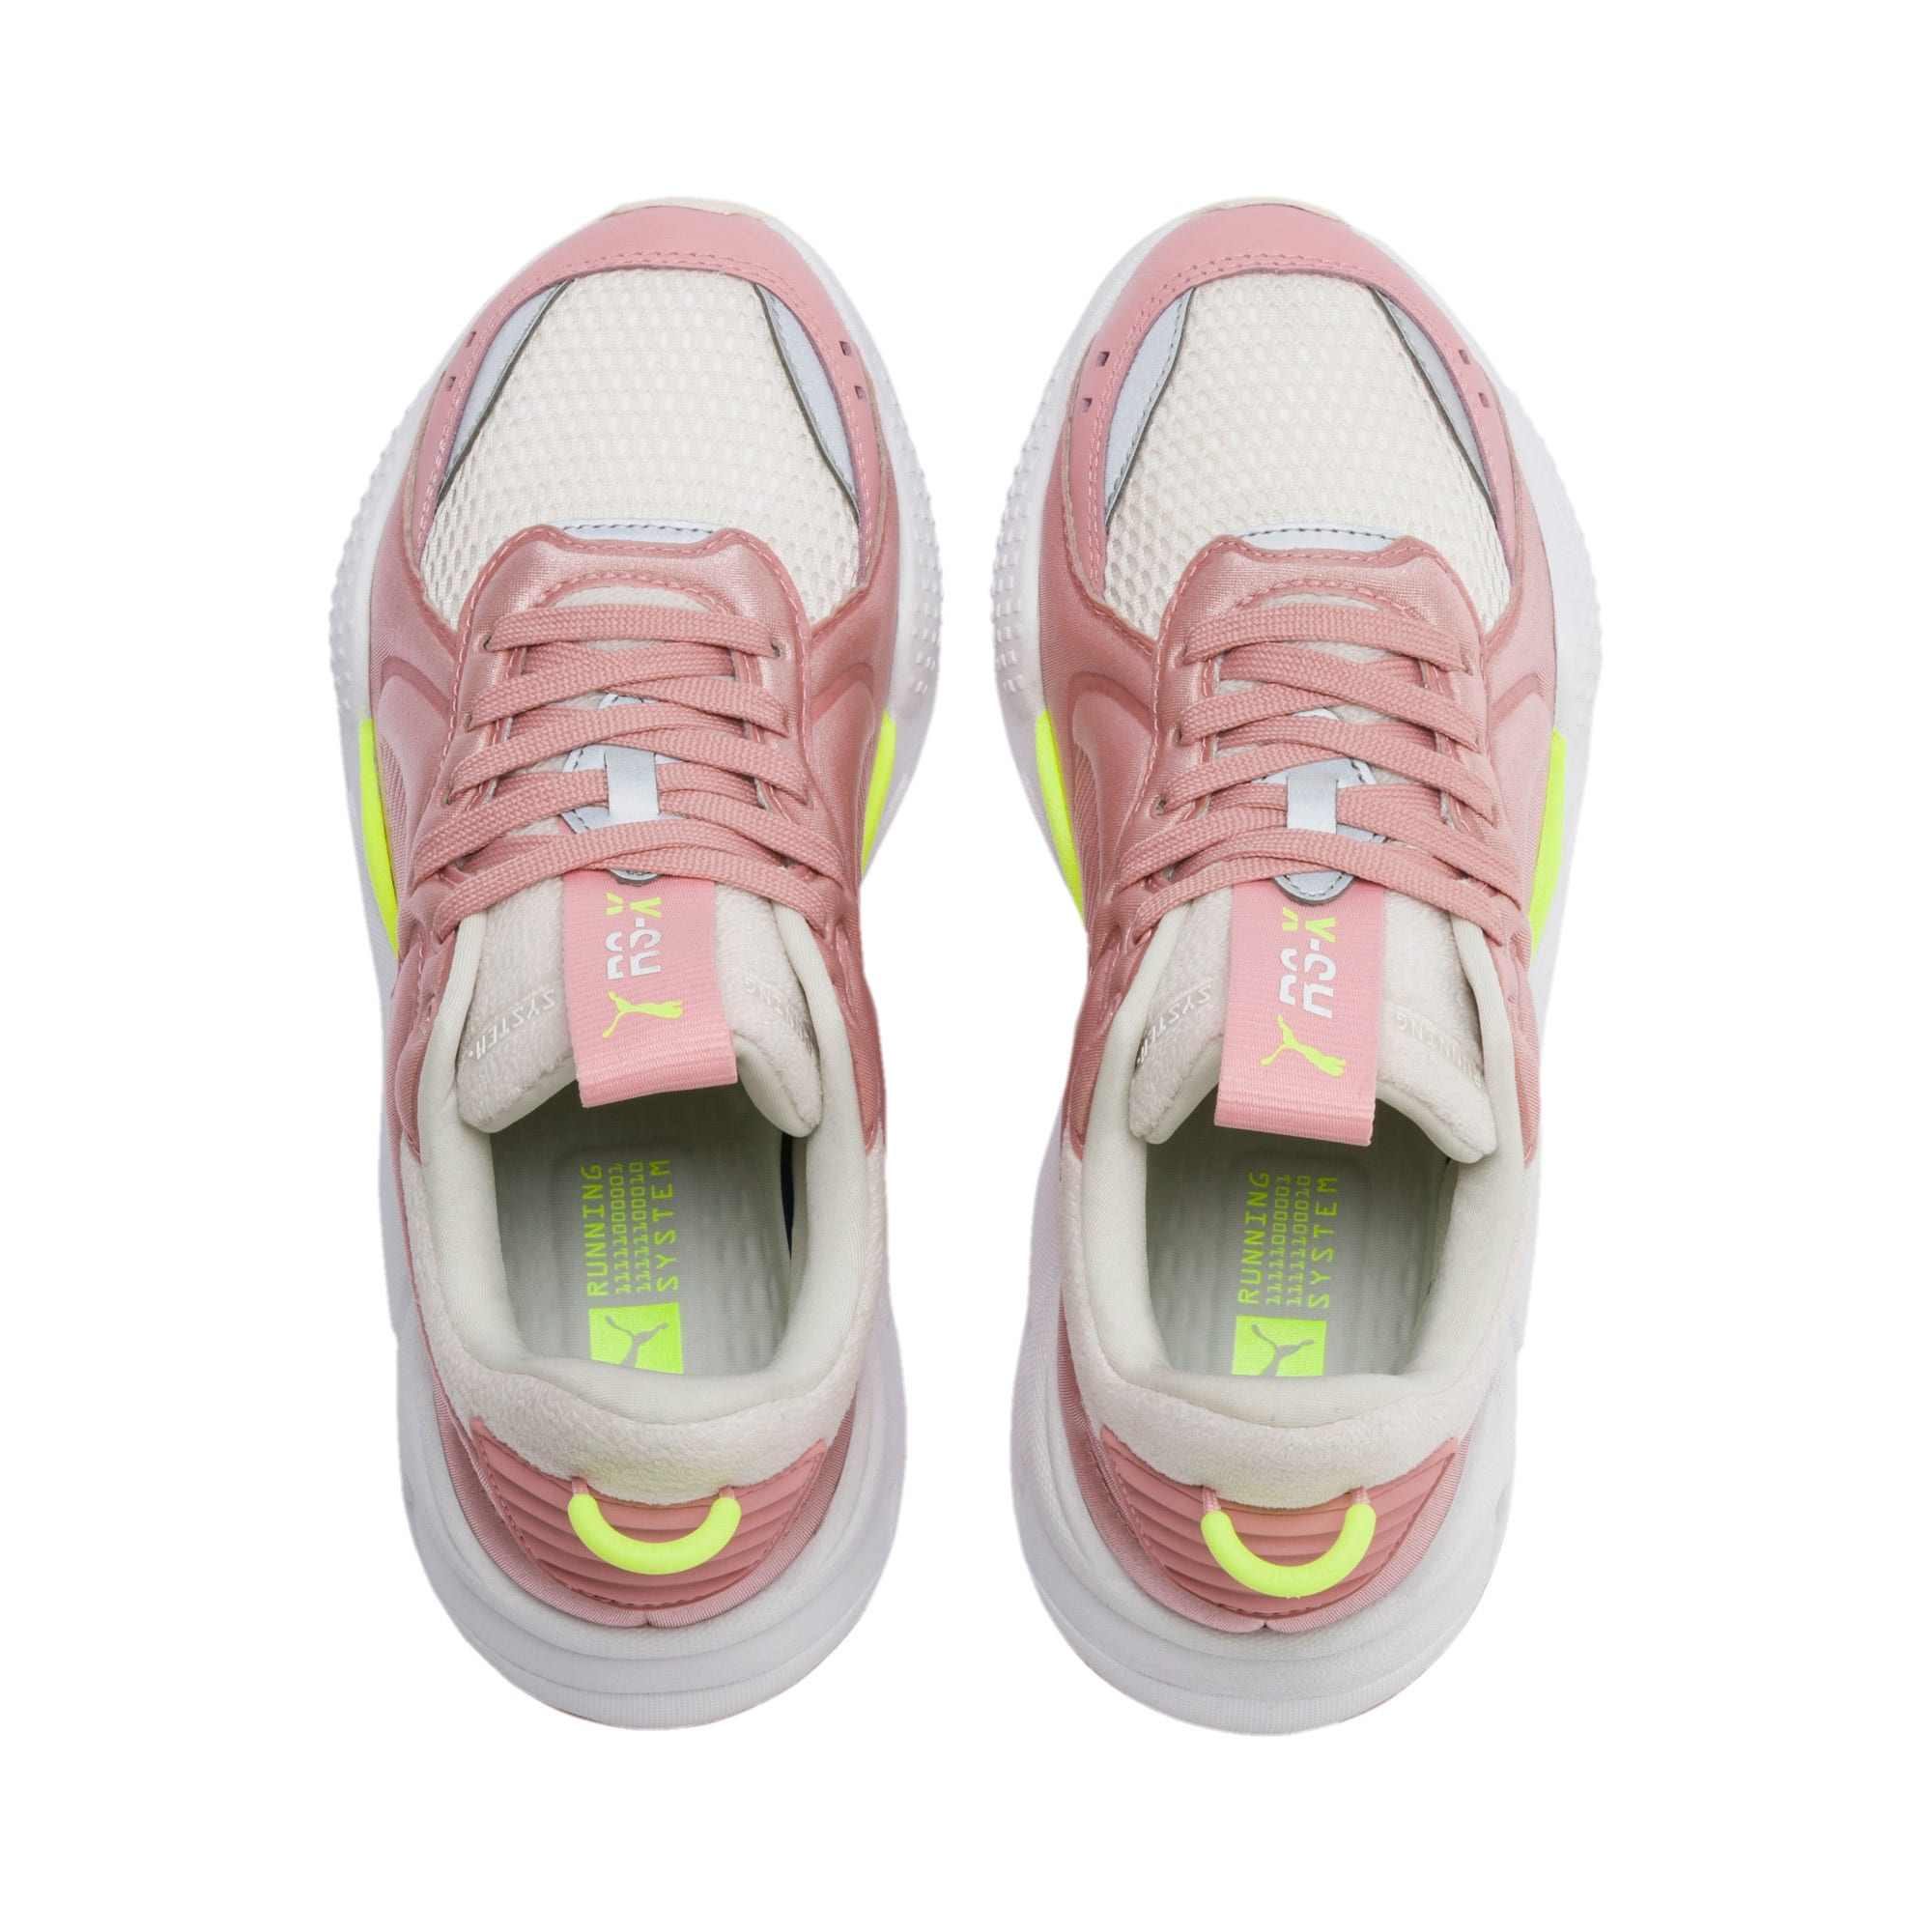 Thumbnail 8 of RS-X Softcase Sneaker, Bridal Rose-Pastel Parchment, medium